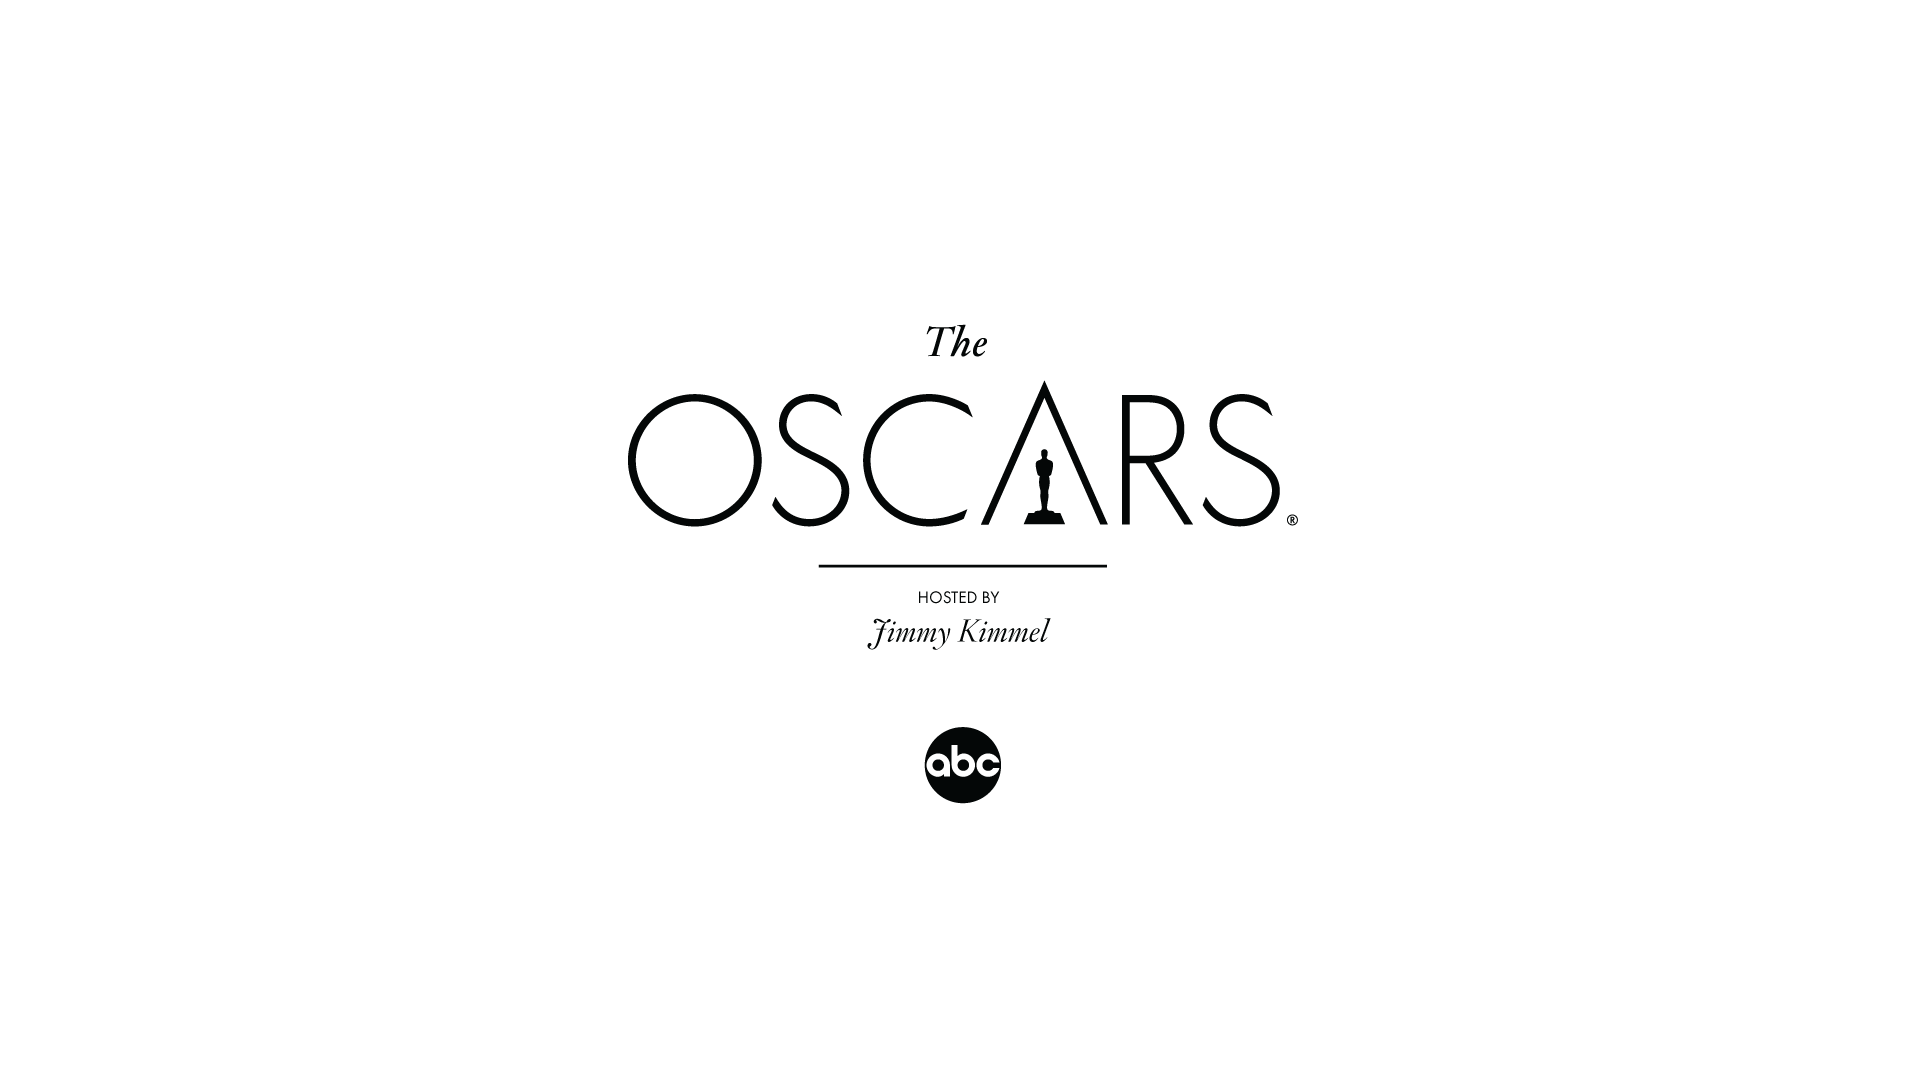 Oscars_TuneIn_2017.png